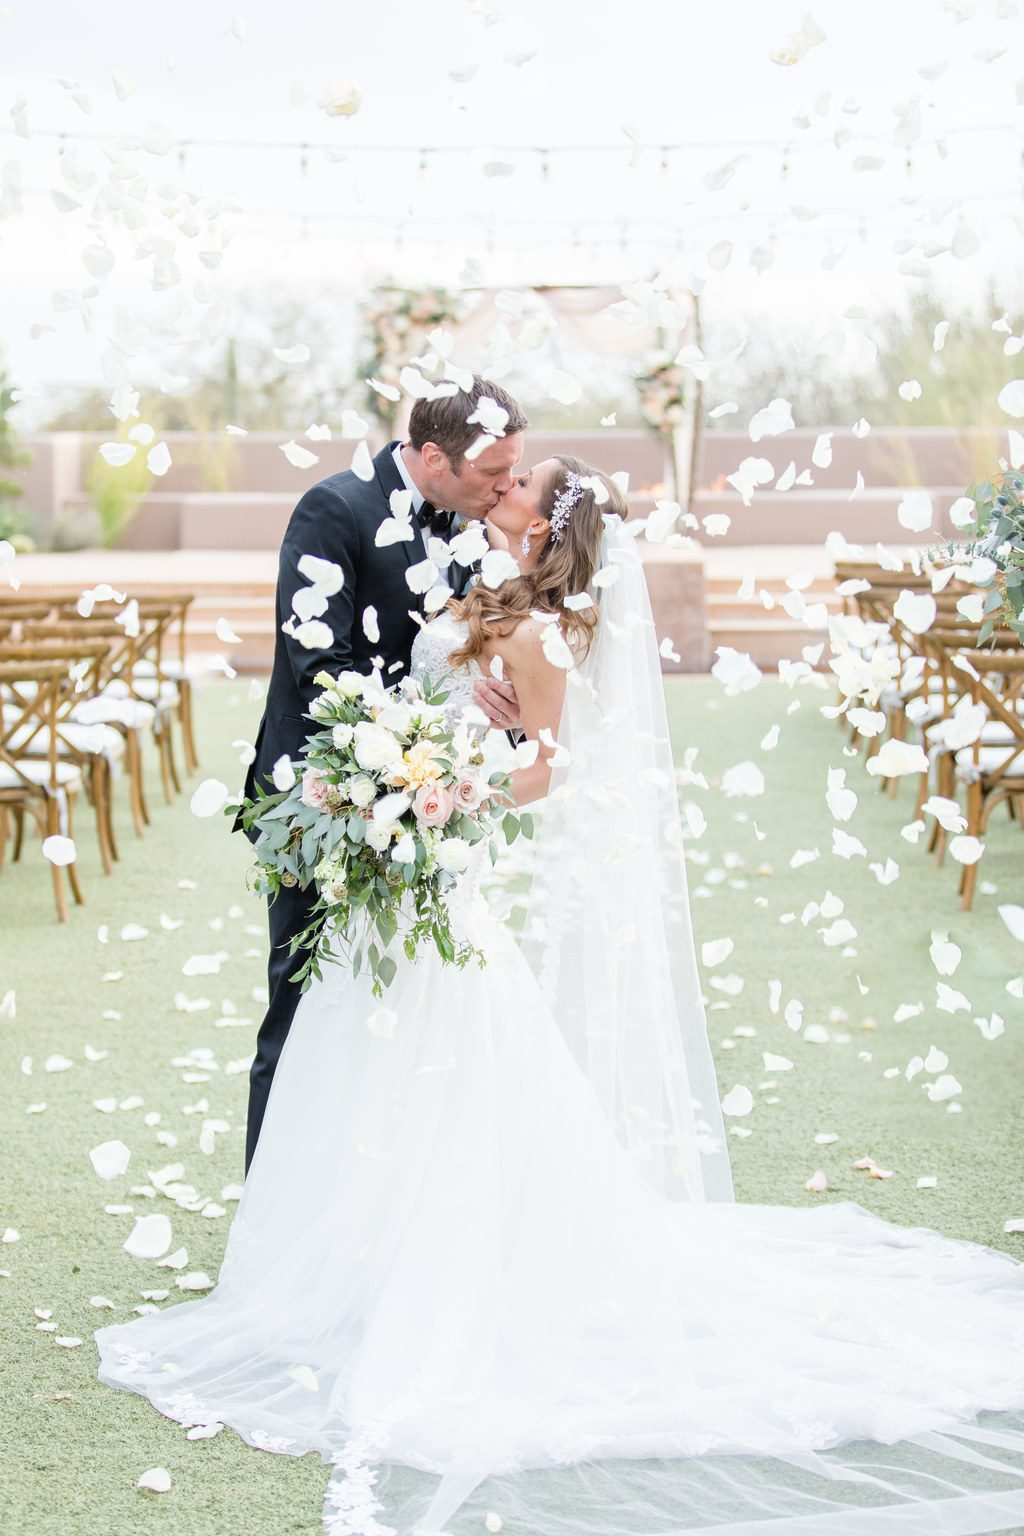 bride and groom kiss and flower petals fall around them